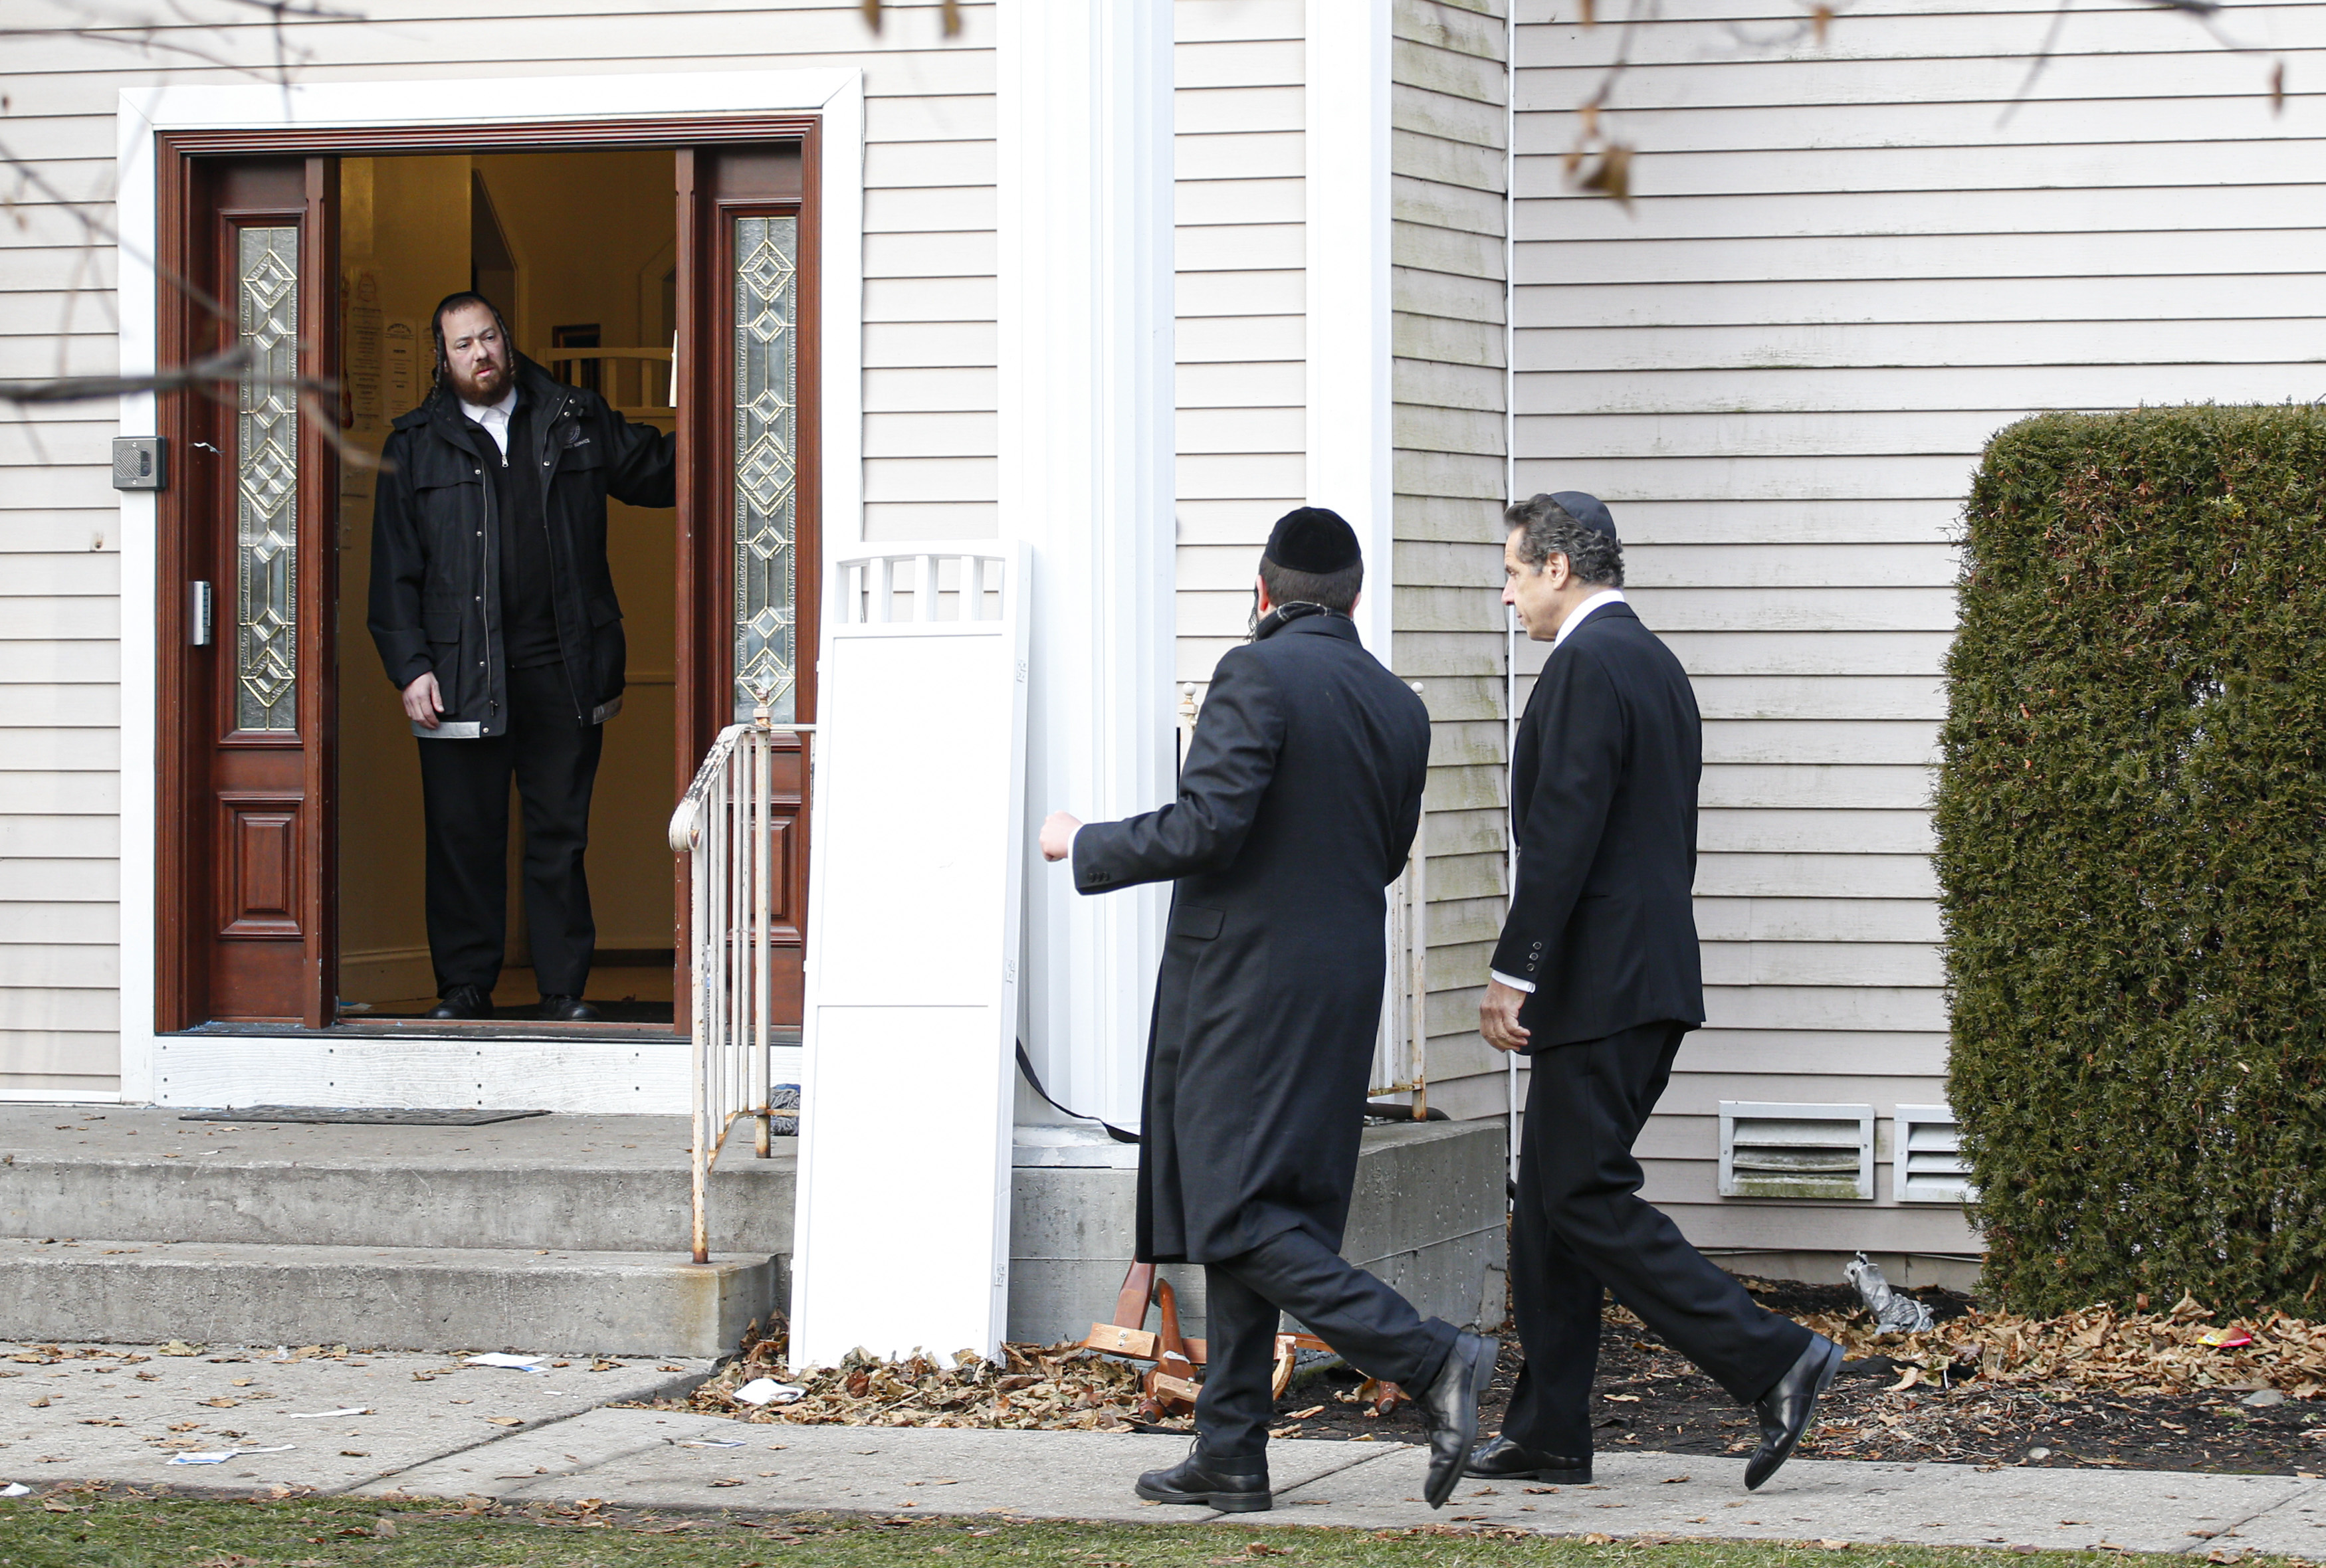 New York Governor Andrew Cuomo arrives to the home of rabbi, Chaim Rottenbergin Monsey, in New York on December 29, 2019 after a machete attack that took place earlier outside the rabbi's home during the Jewish festival of Hanukkah in Monsey, New York. (KENA BETANCUR/AFP via Getty Images)